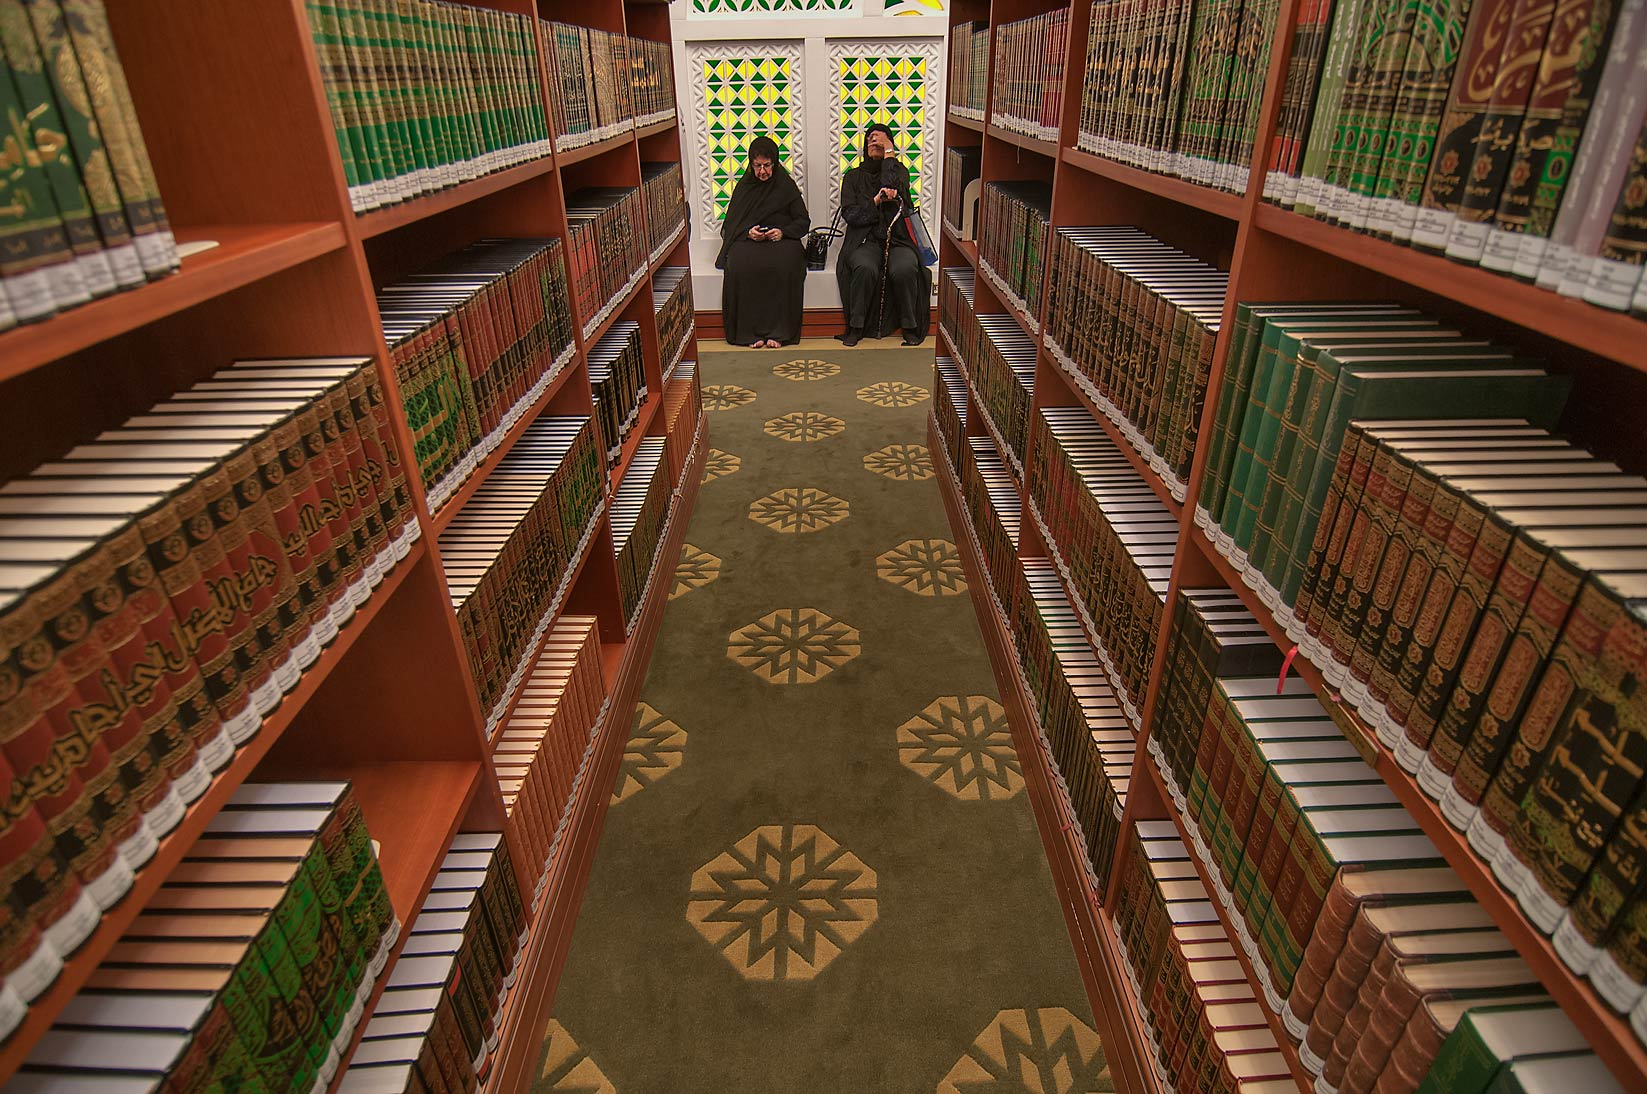 Rows of Quran books (Islamic religious texts) in...Ibn Abdul Wahhab Mosque). Doha, Qatar